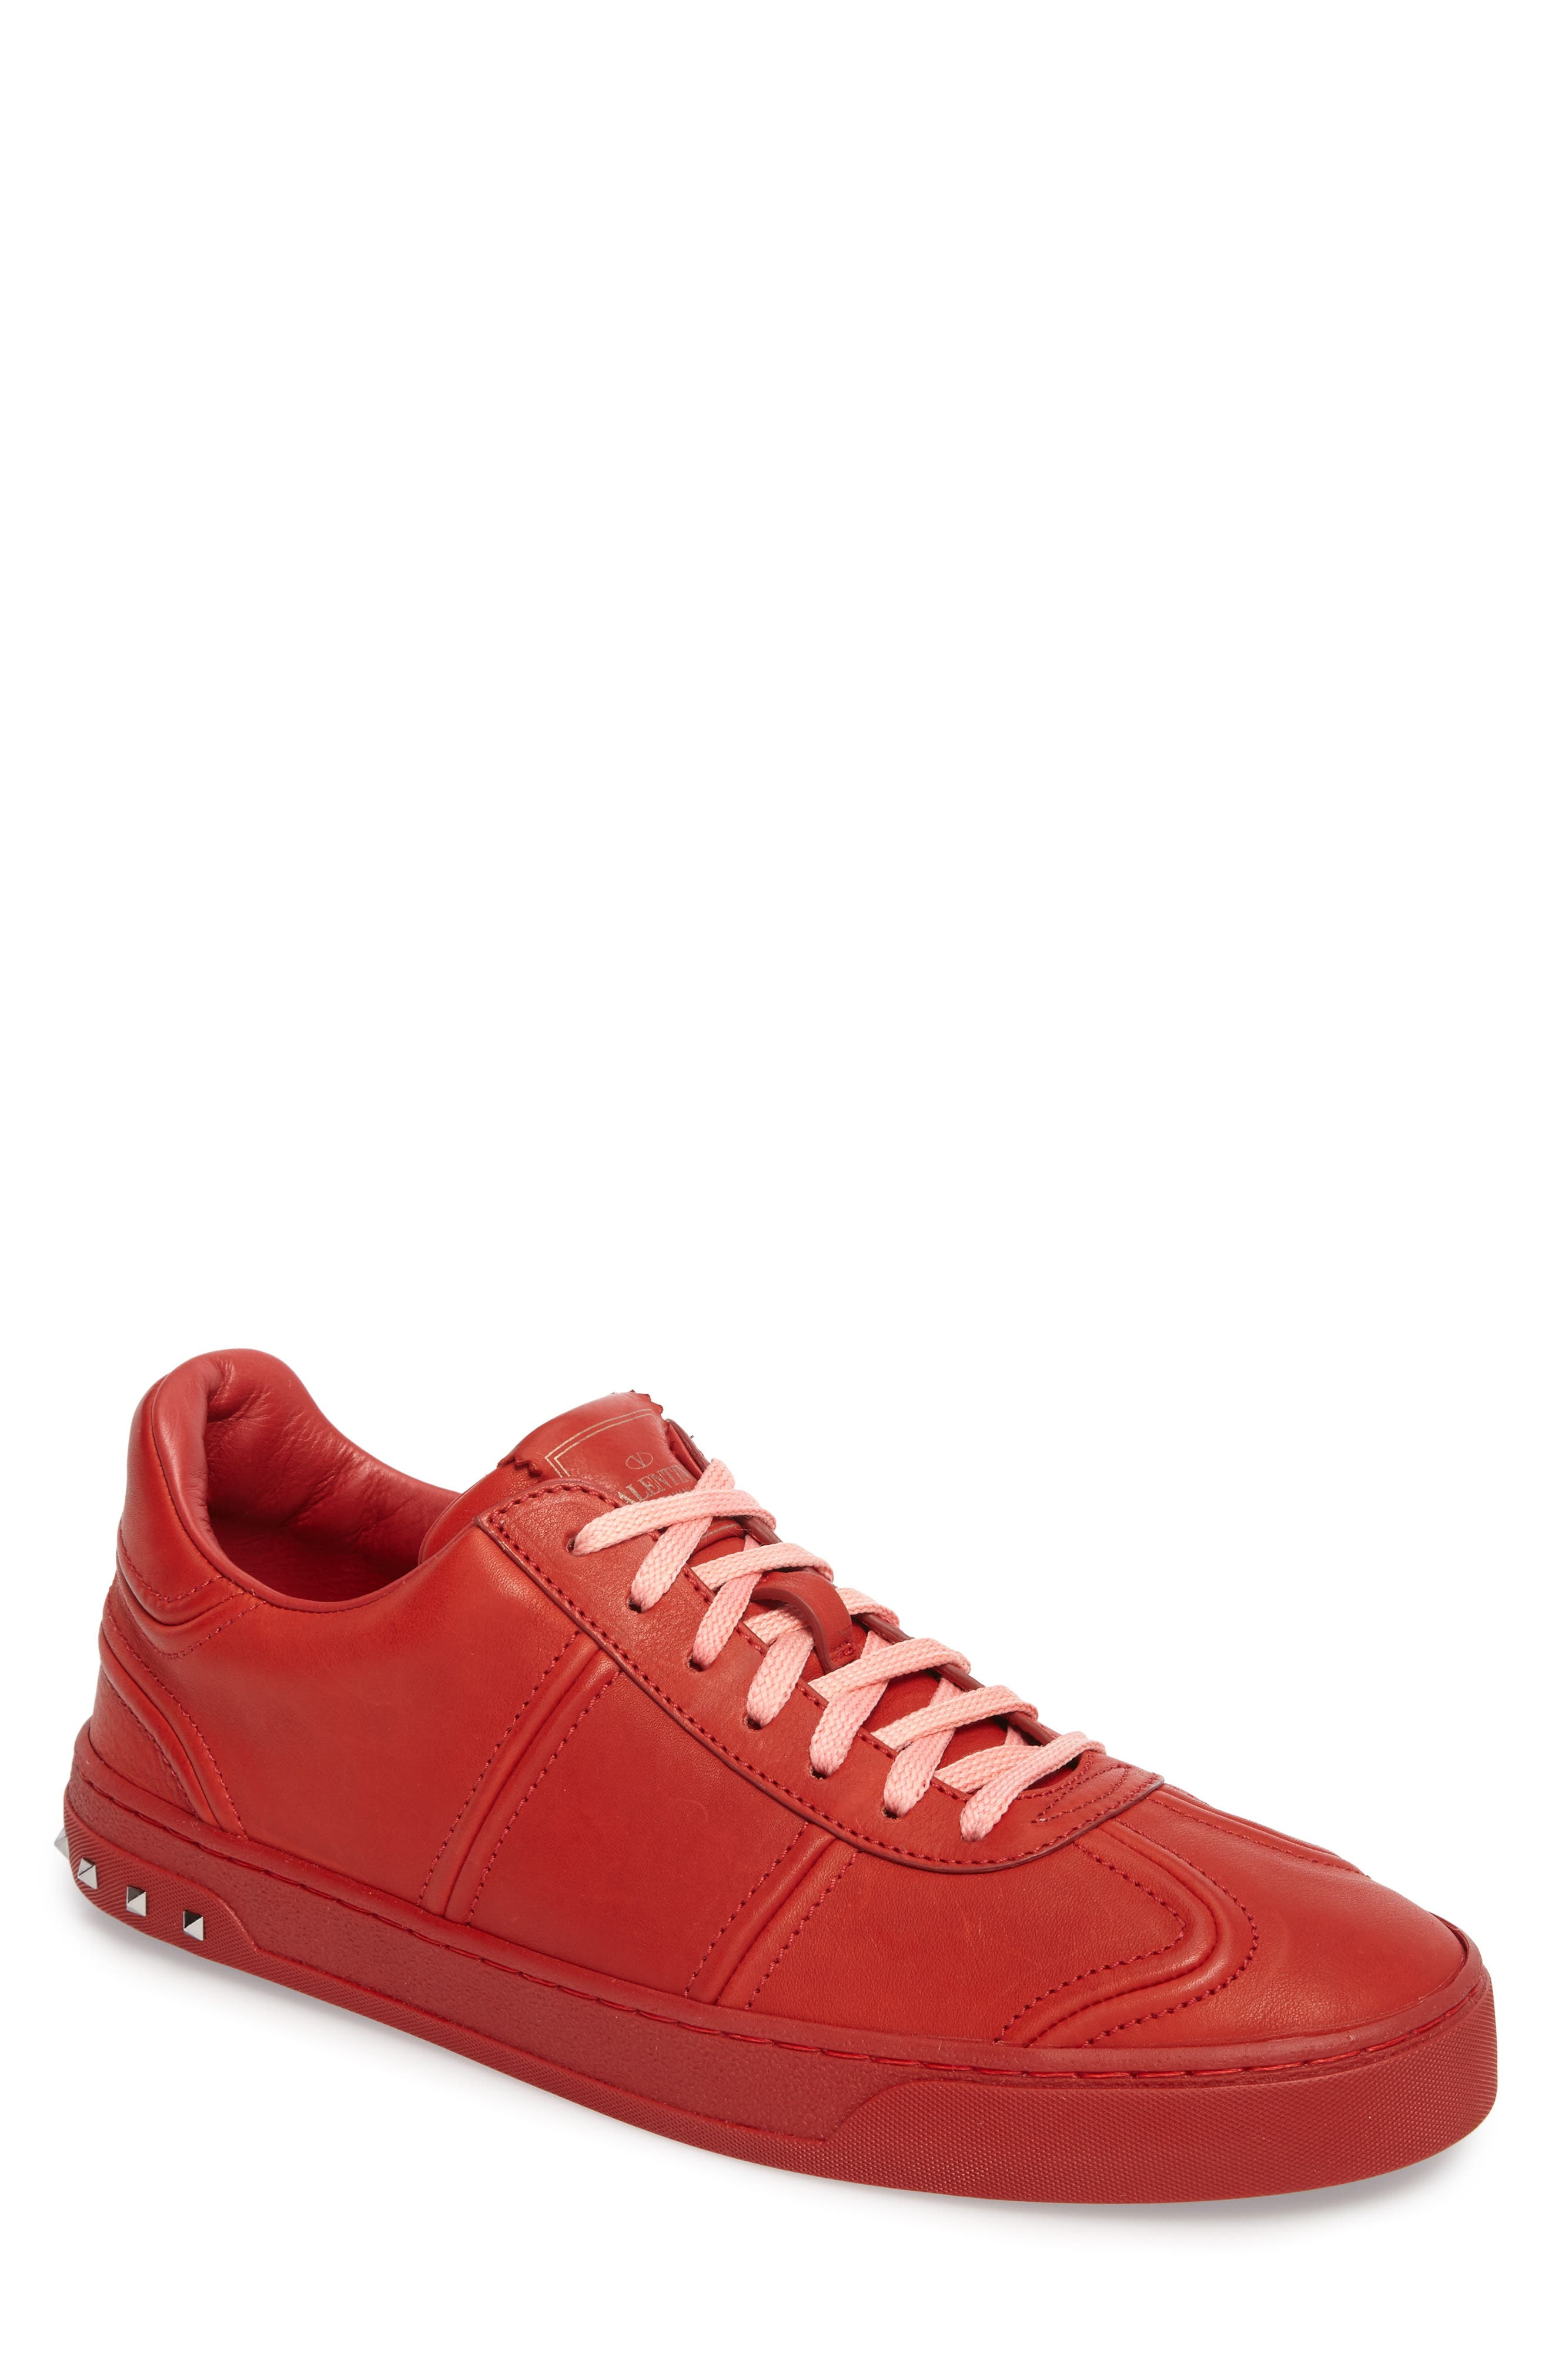 Fly Crew Sneaker,                             Main thumbnail 1, color,                             Rosso